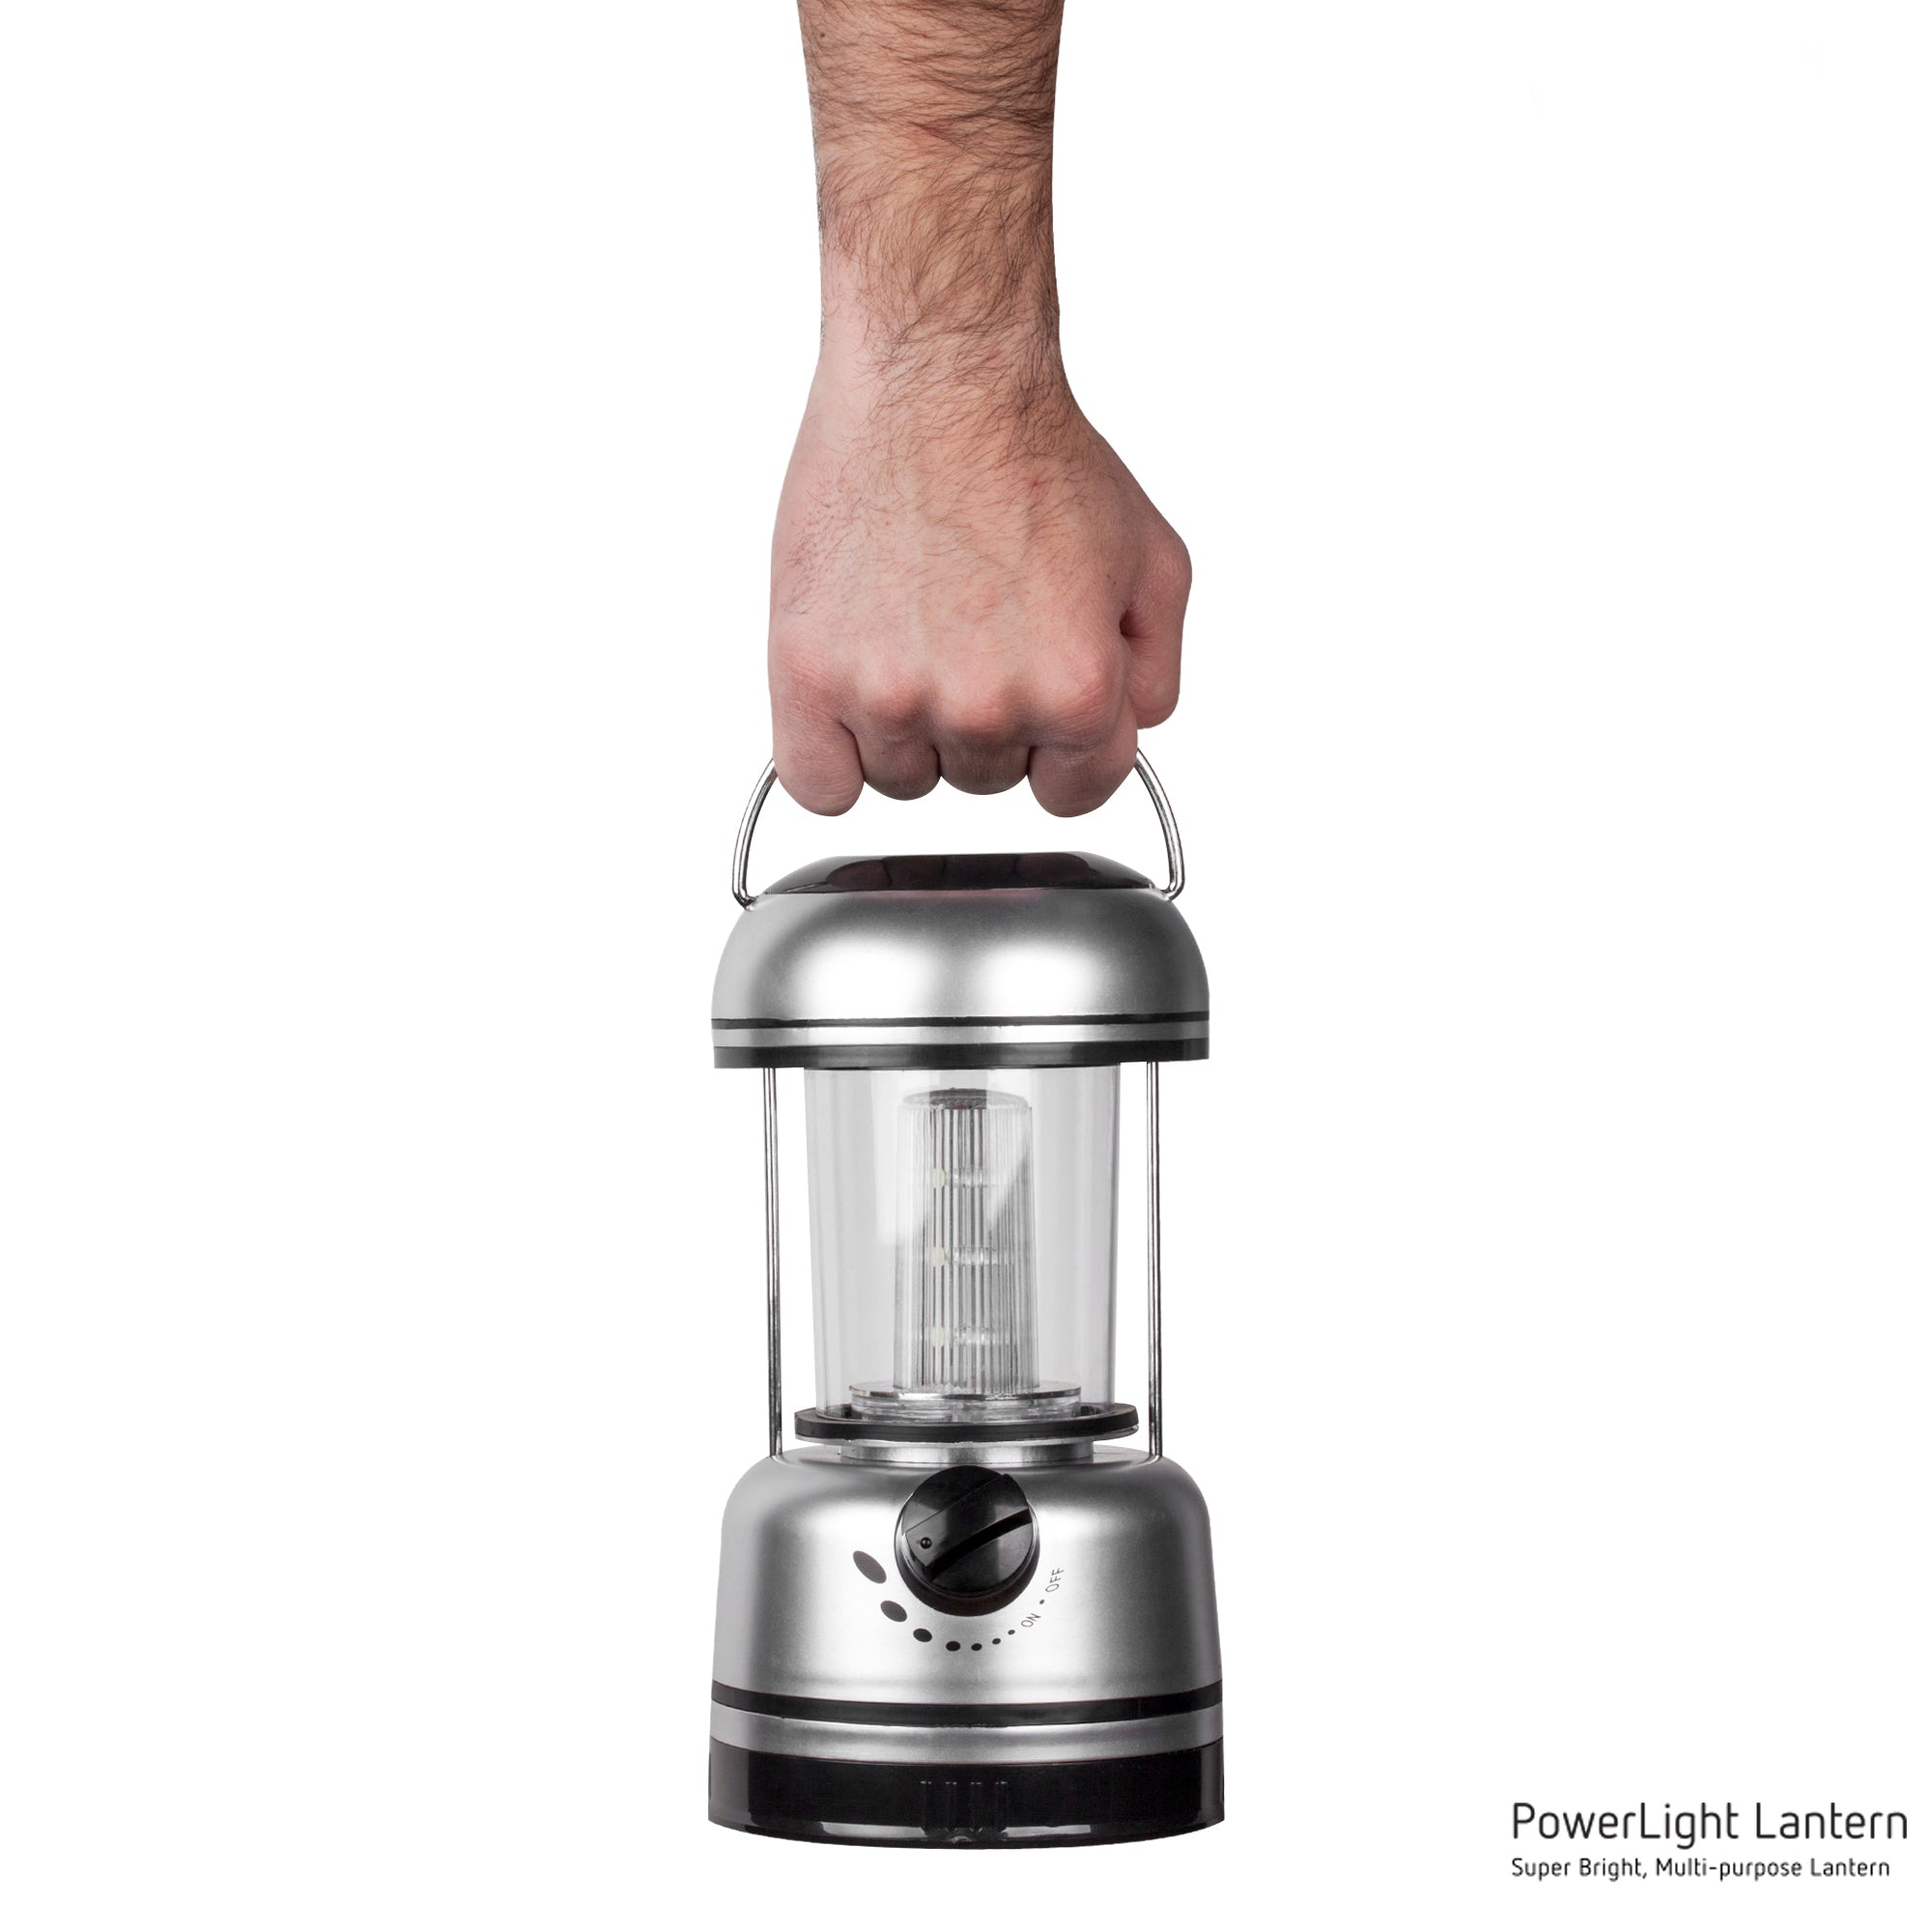 Silver Power Light Lantern